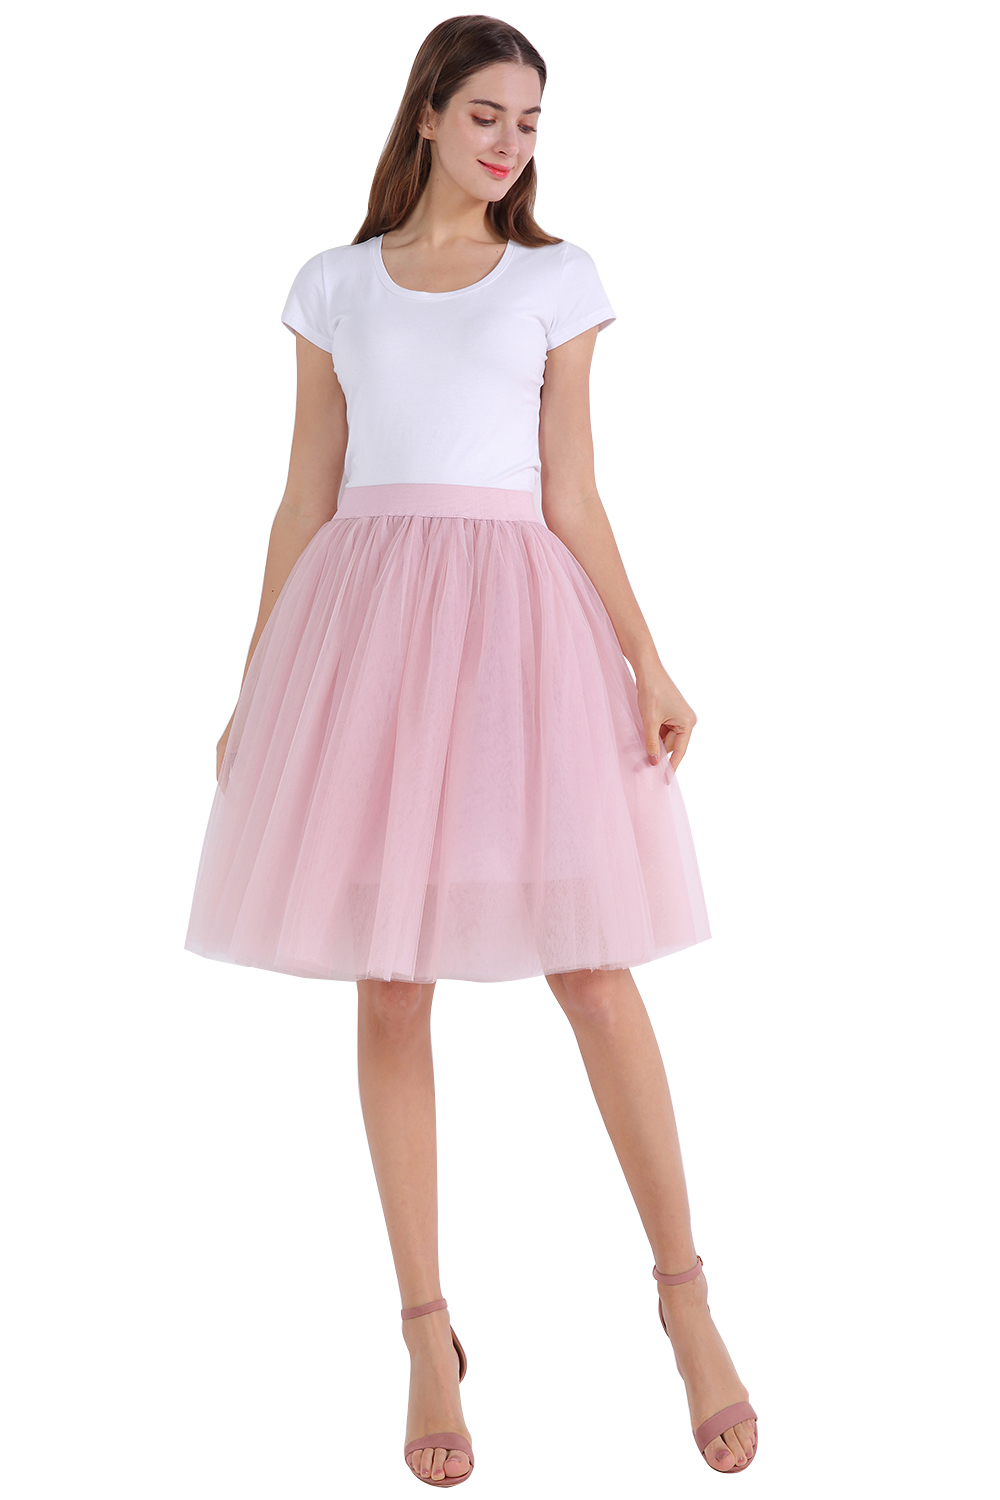 In Stock 7 Layer Petticoats Pink Blue Tulle Short Underskirt Girls Ballet Dance Dresses Petticoats Pleated Mesh Underskirt